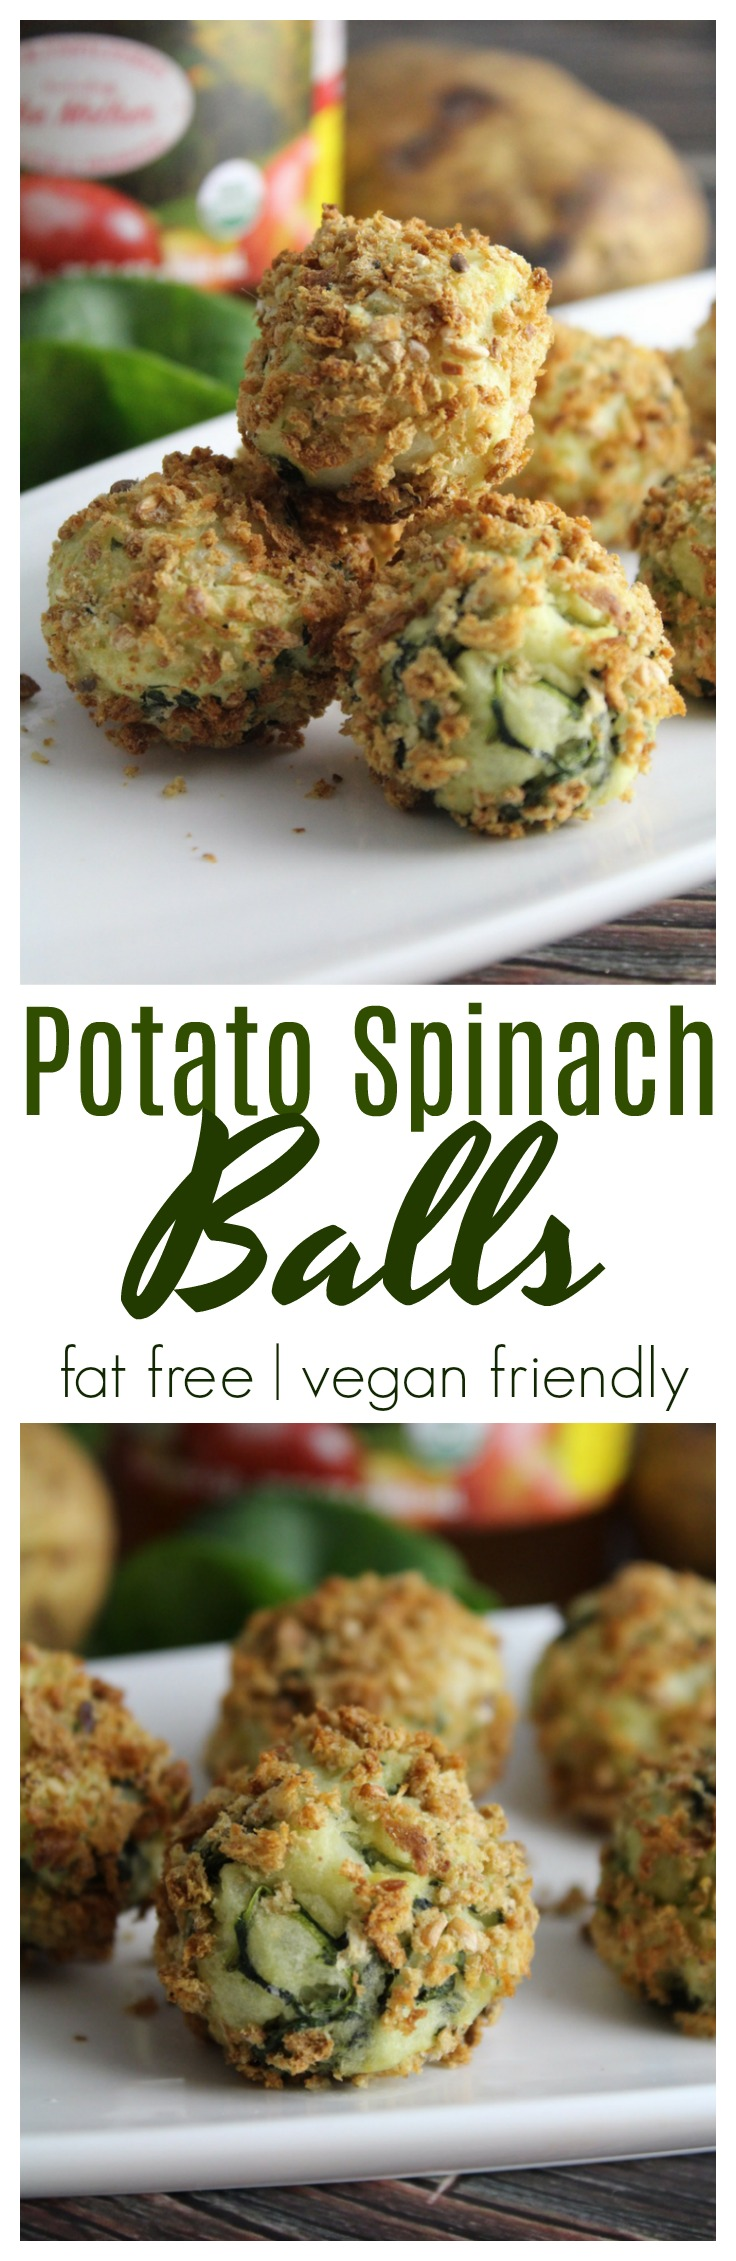 Crunchy on the outside, and creamy on the inside, these Potato Spinach Balls are fat free and the perfect appetizer!